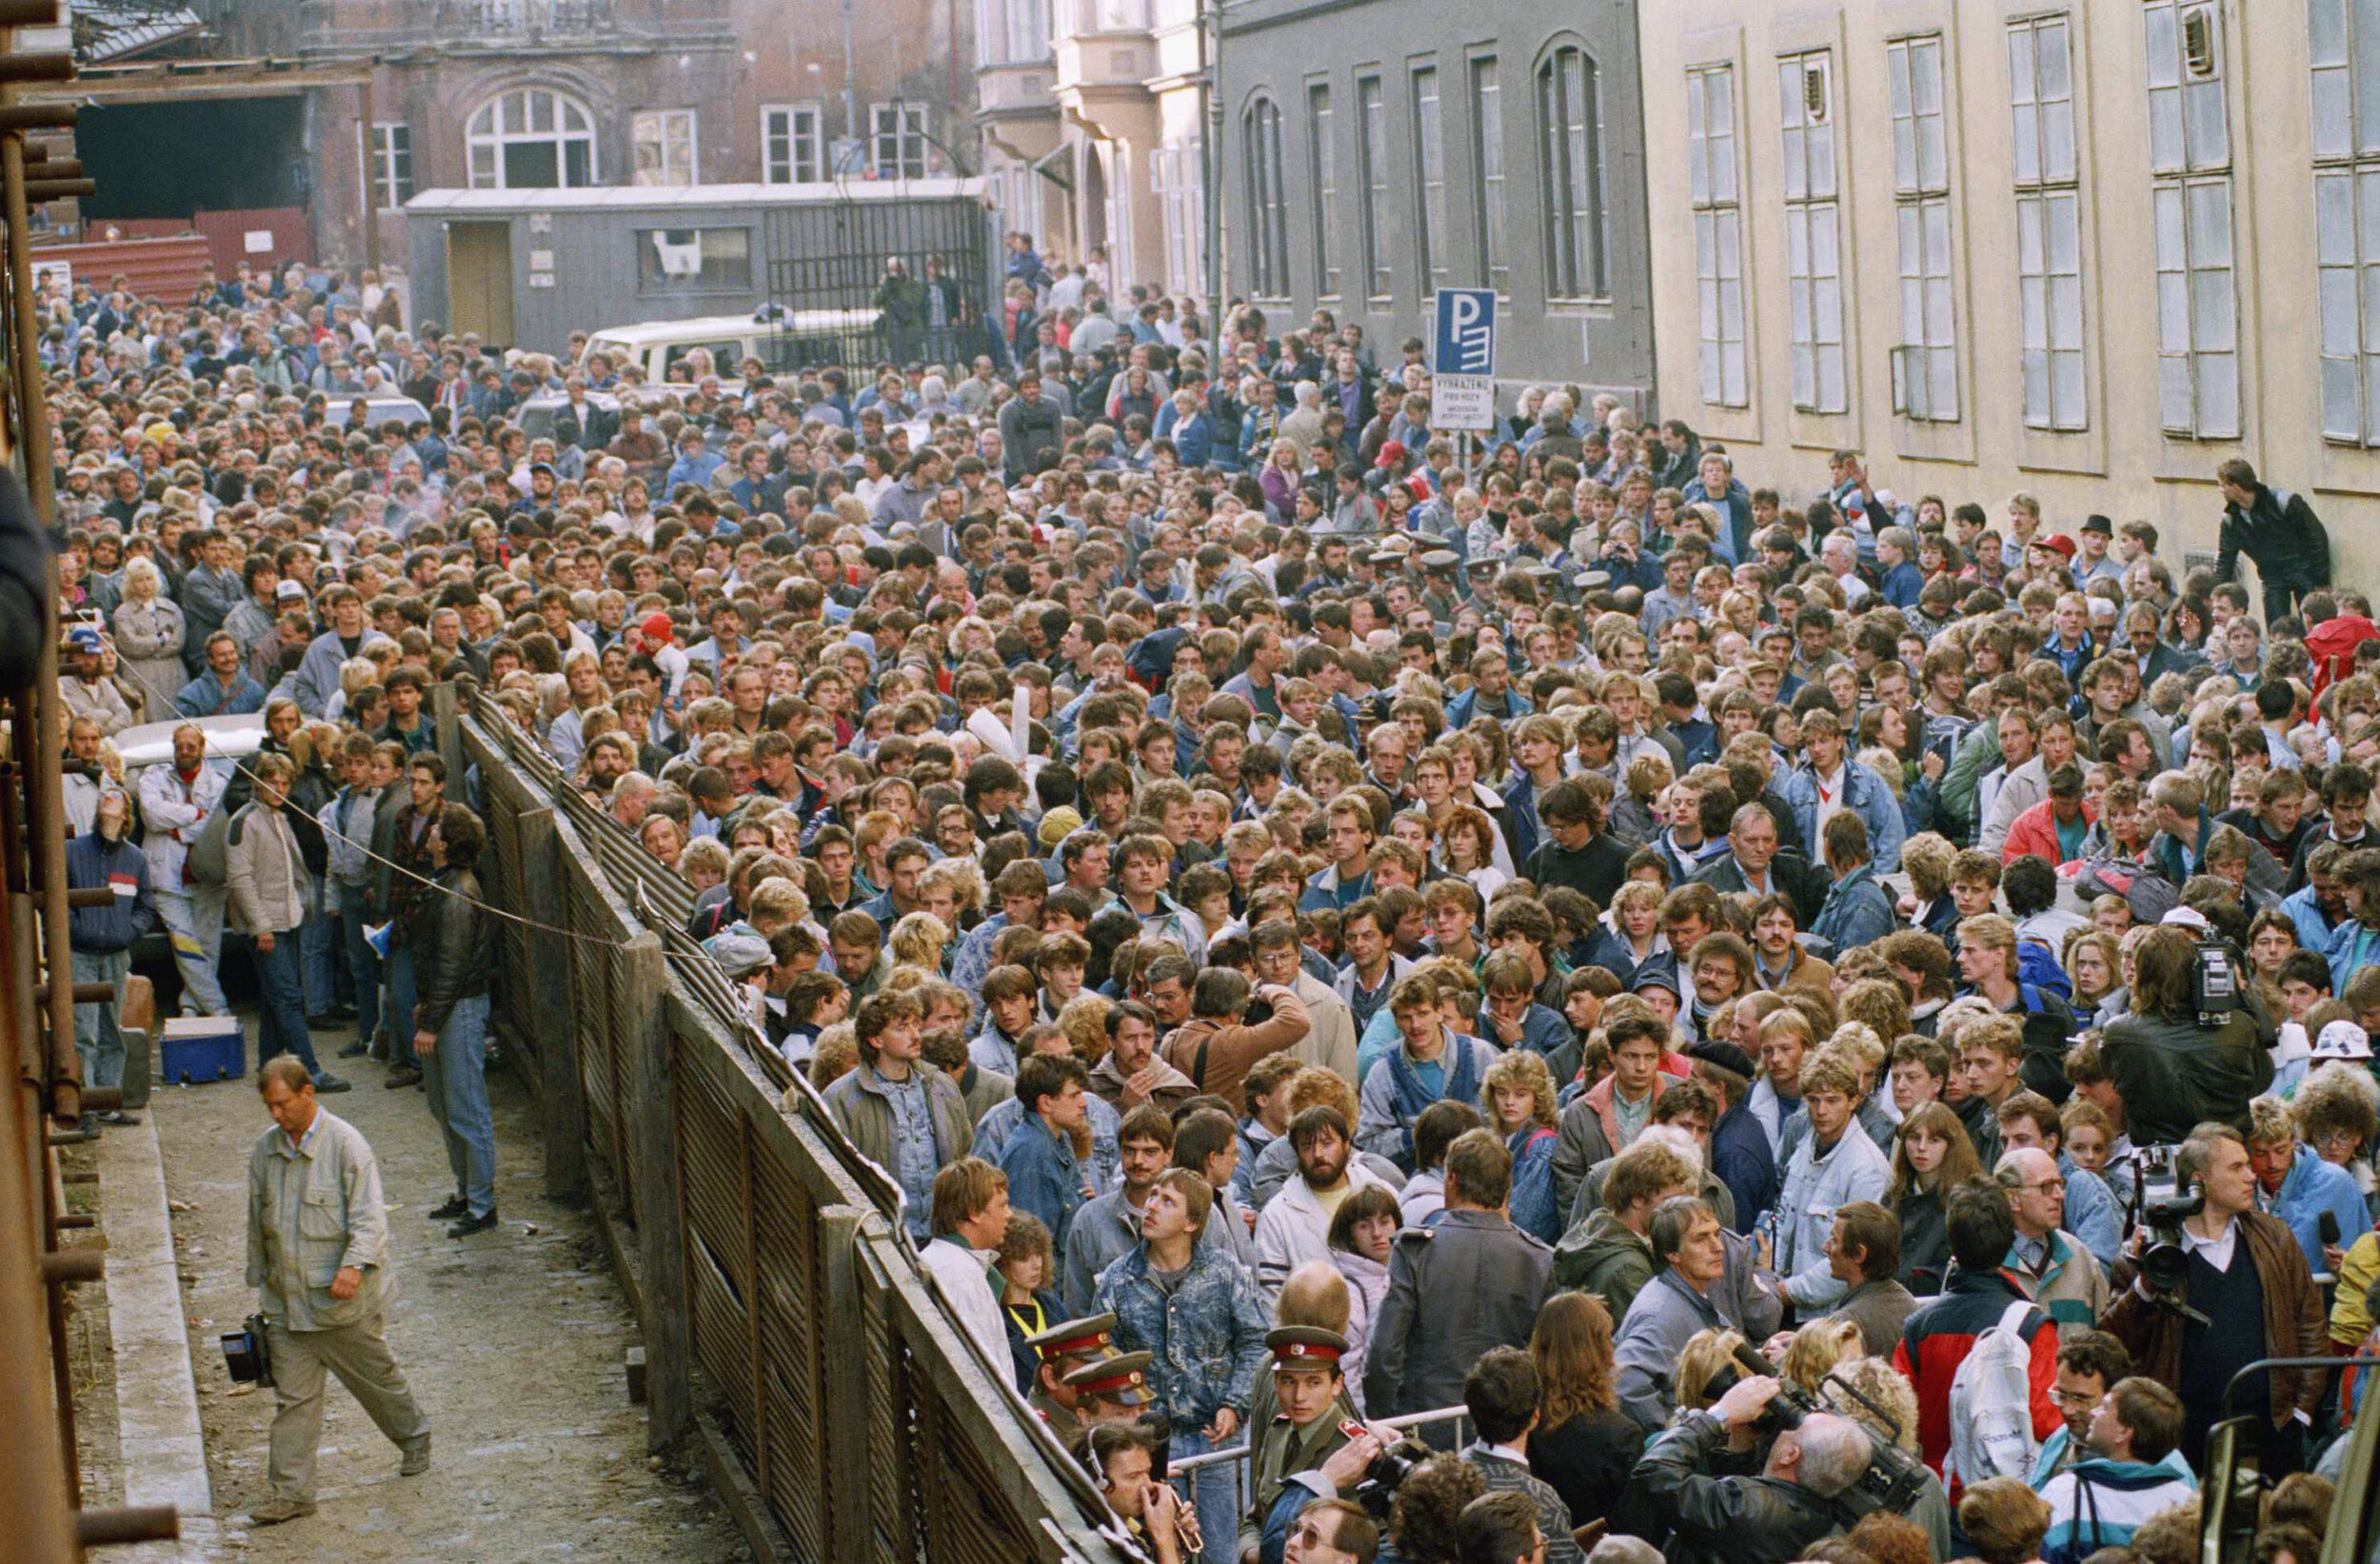 A crowd of about 10,000 East German refugees throng in the street outside the West German embassy in Prague, Czech Republic, before they are allowed to board busses to take them to special trains bound for West Germany, Wednesday, Oct. 4, 1989. (AP Photo/Dieter Endlicher)